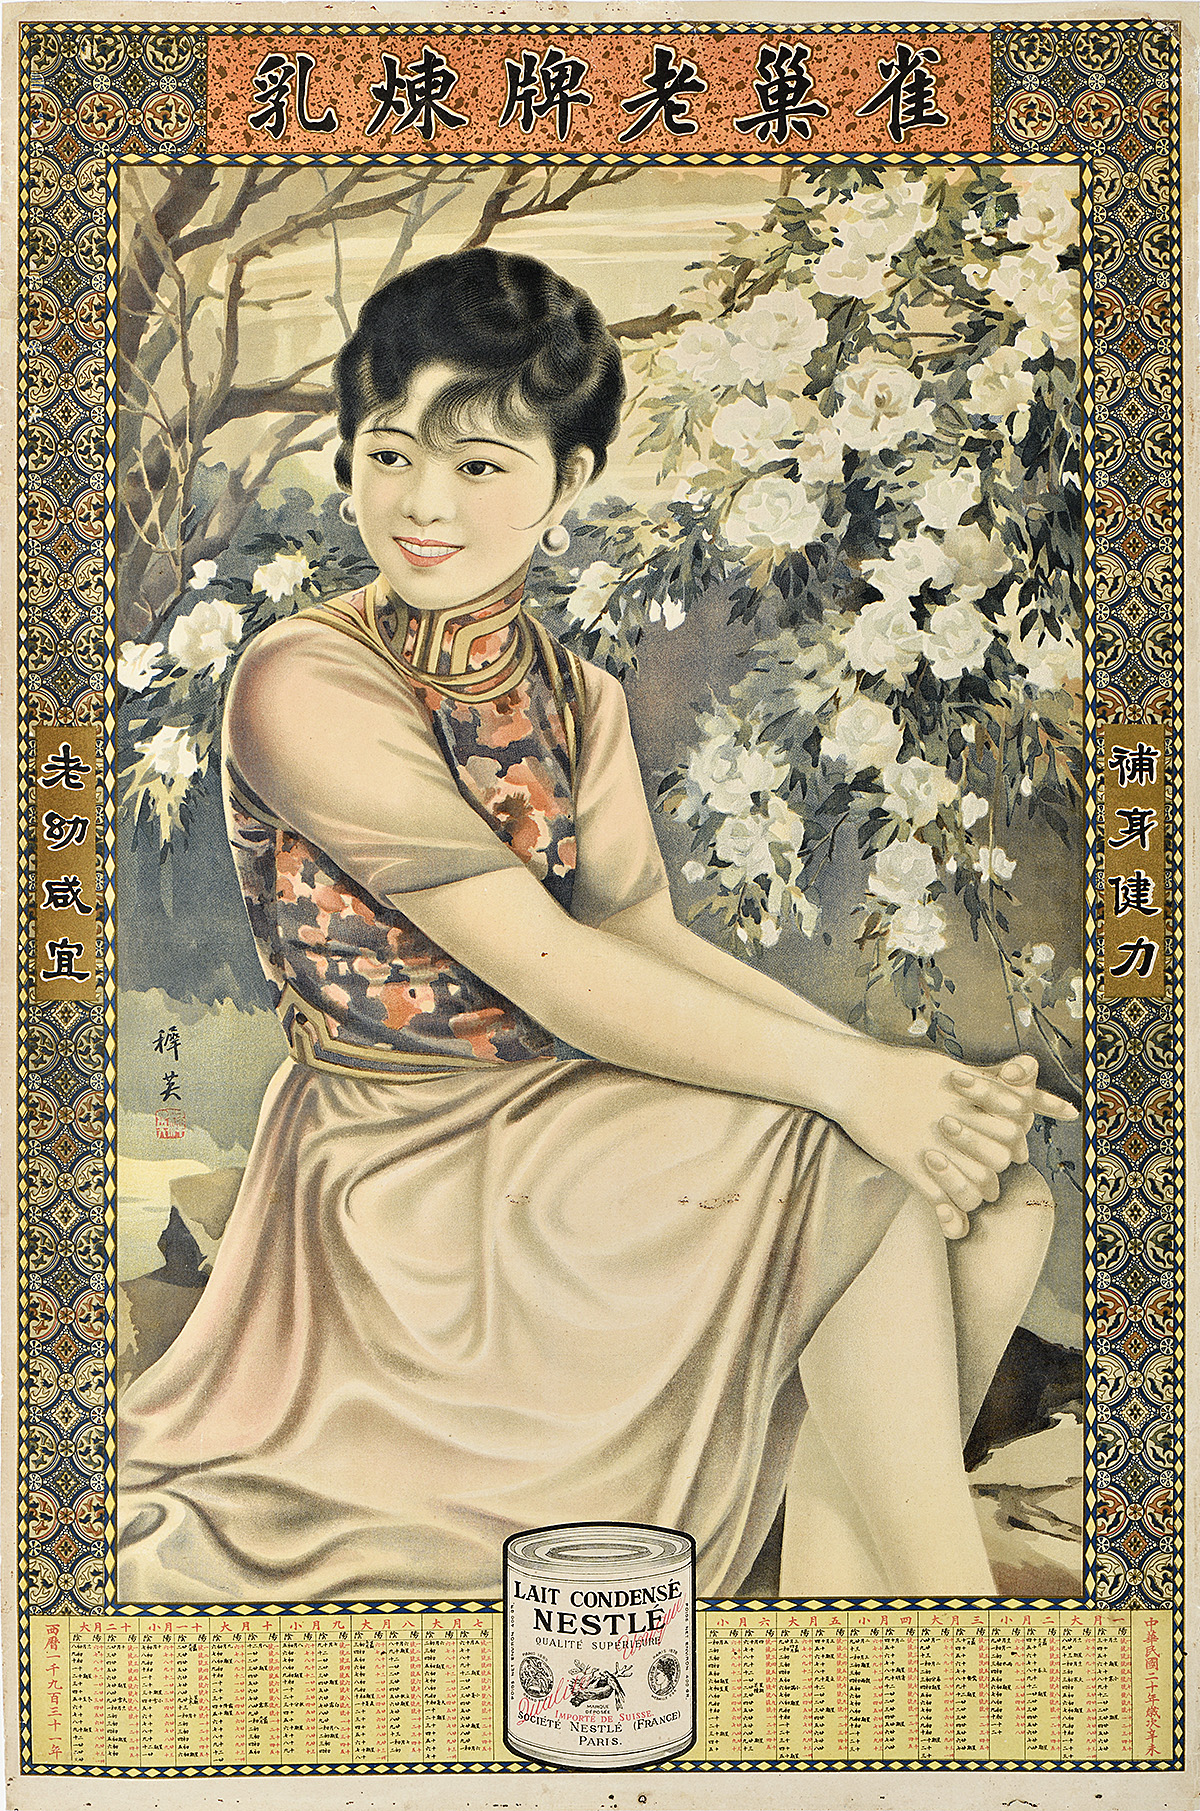 illustrational poster advertising condensed milk with an image of a woman sitting outdoors underneath a flowering tree